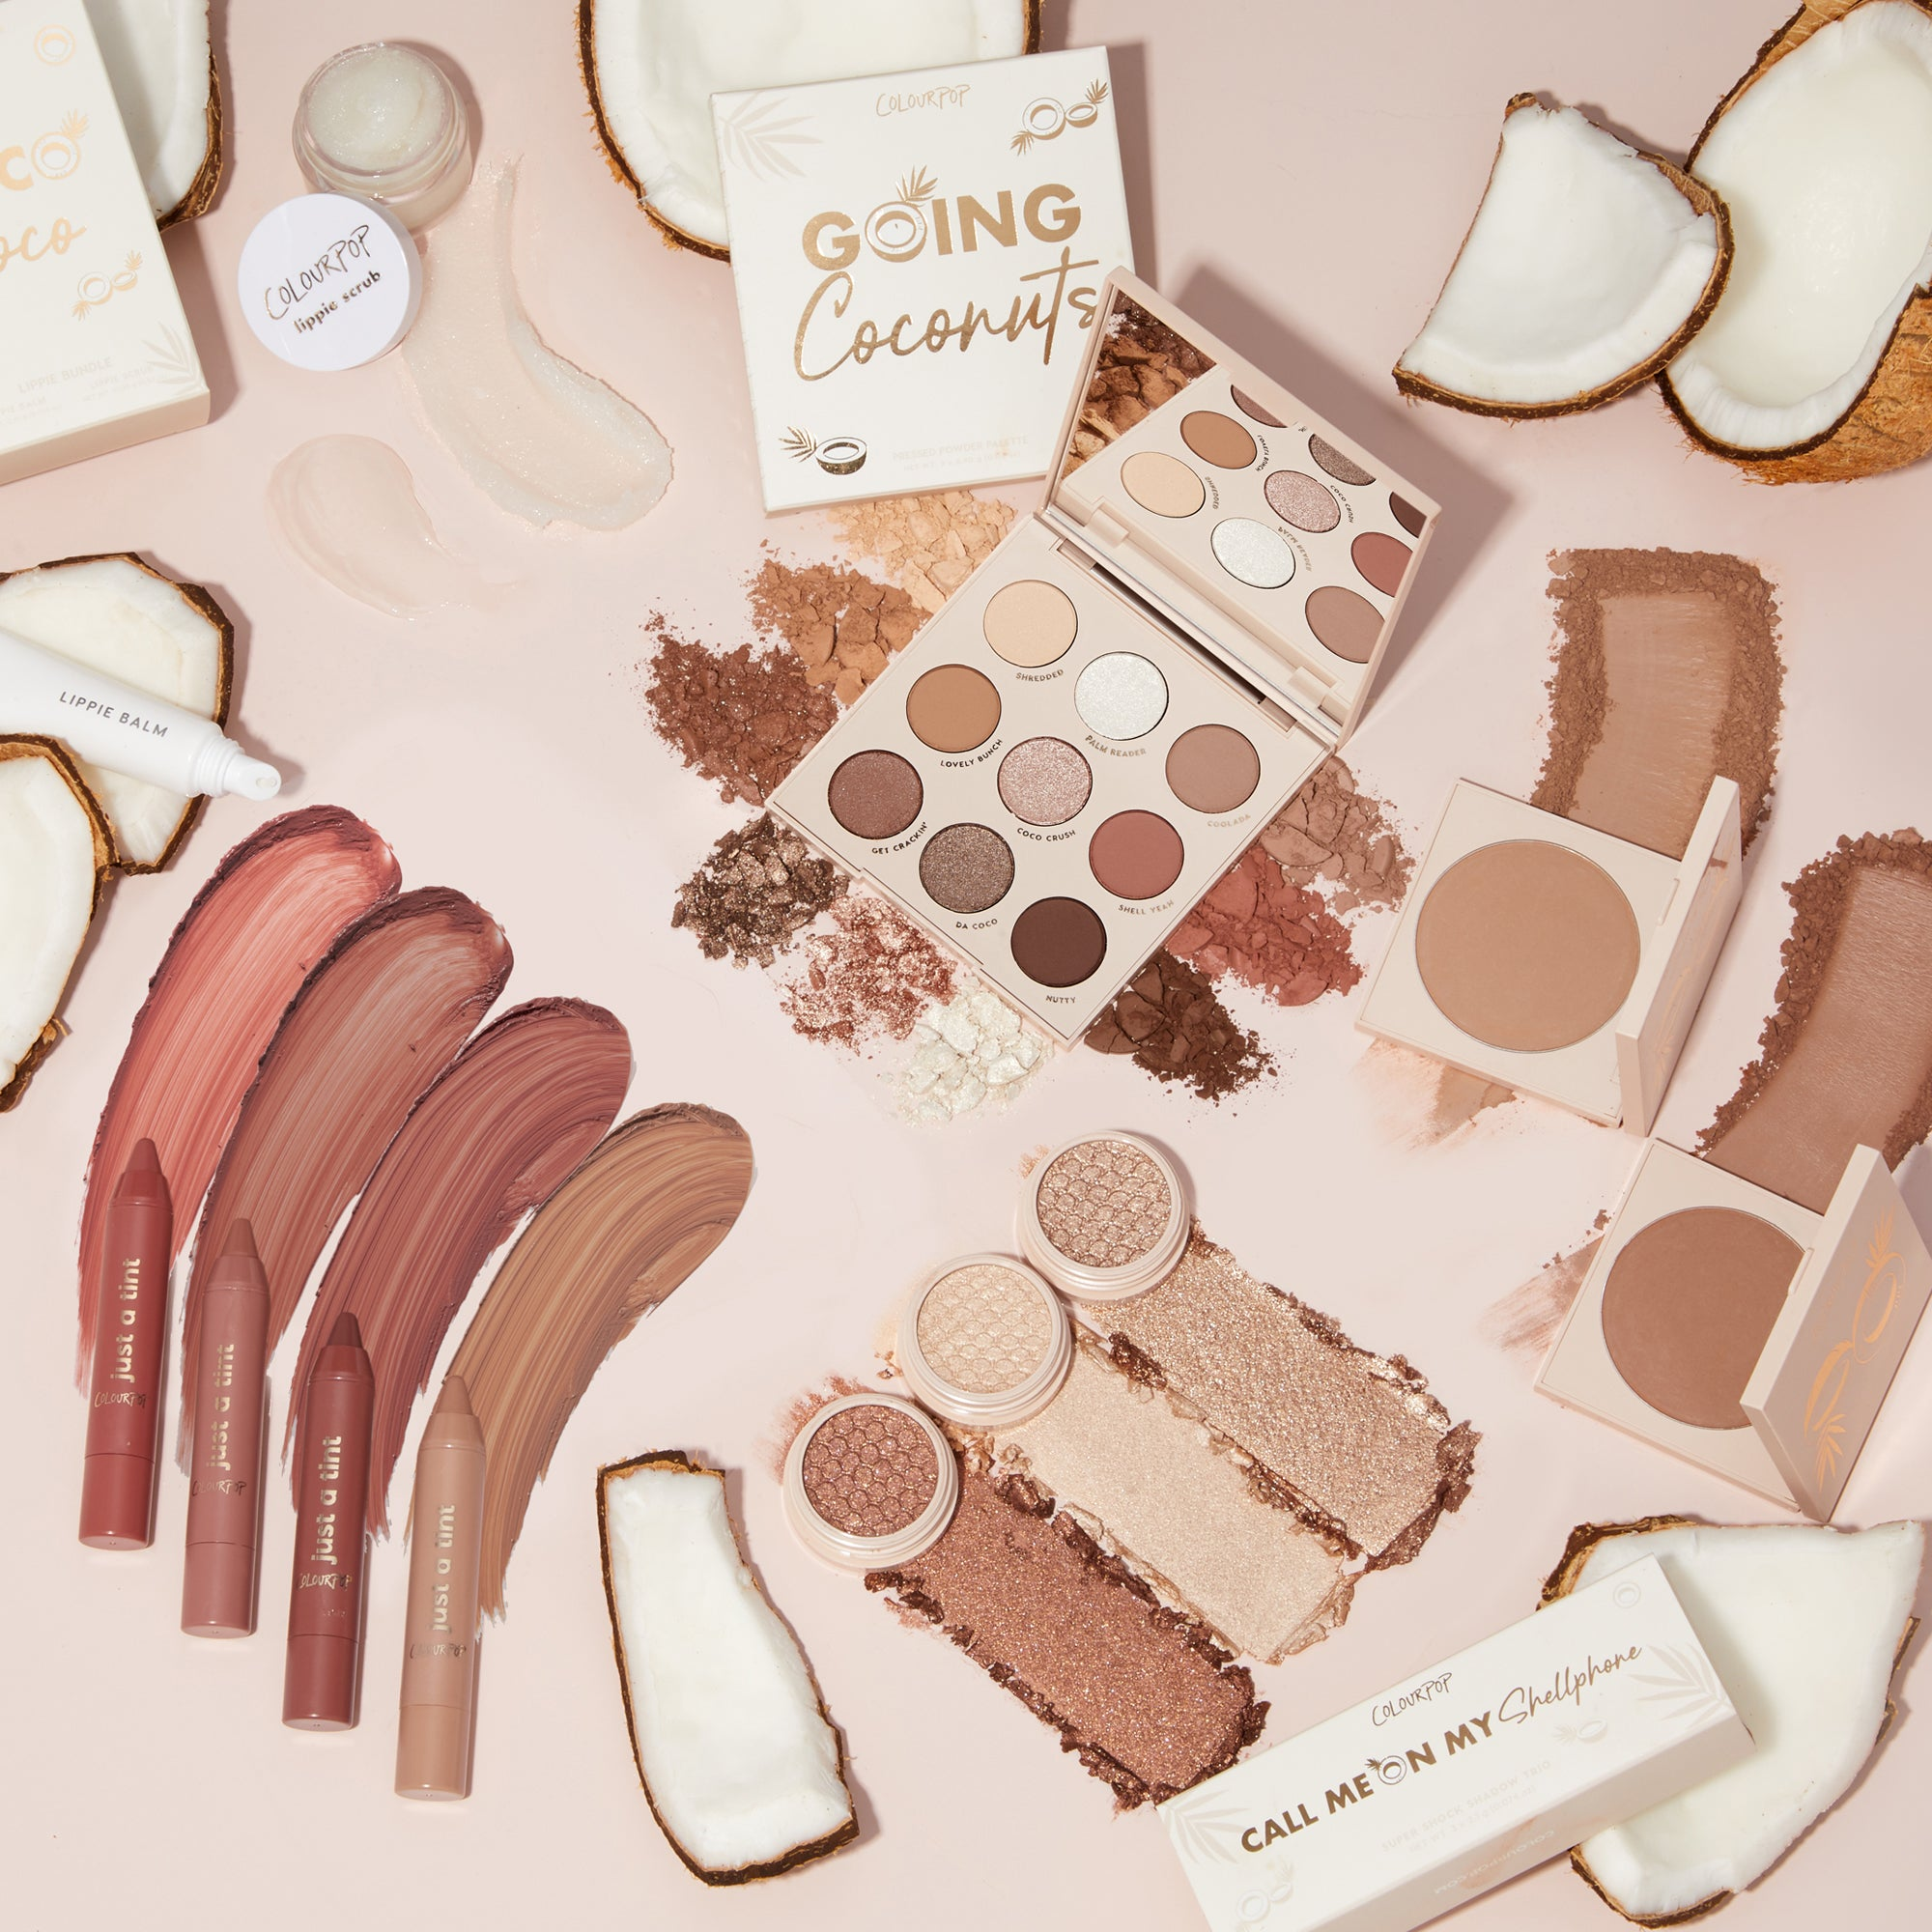 Going Coconuts Collection includes Bronzers, Lip Tints, Super Shock Eyeshadows, Lip Scrub, Lip Balm and a Cool-toned Eyeshadow Palette stylized photo with coconuts